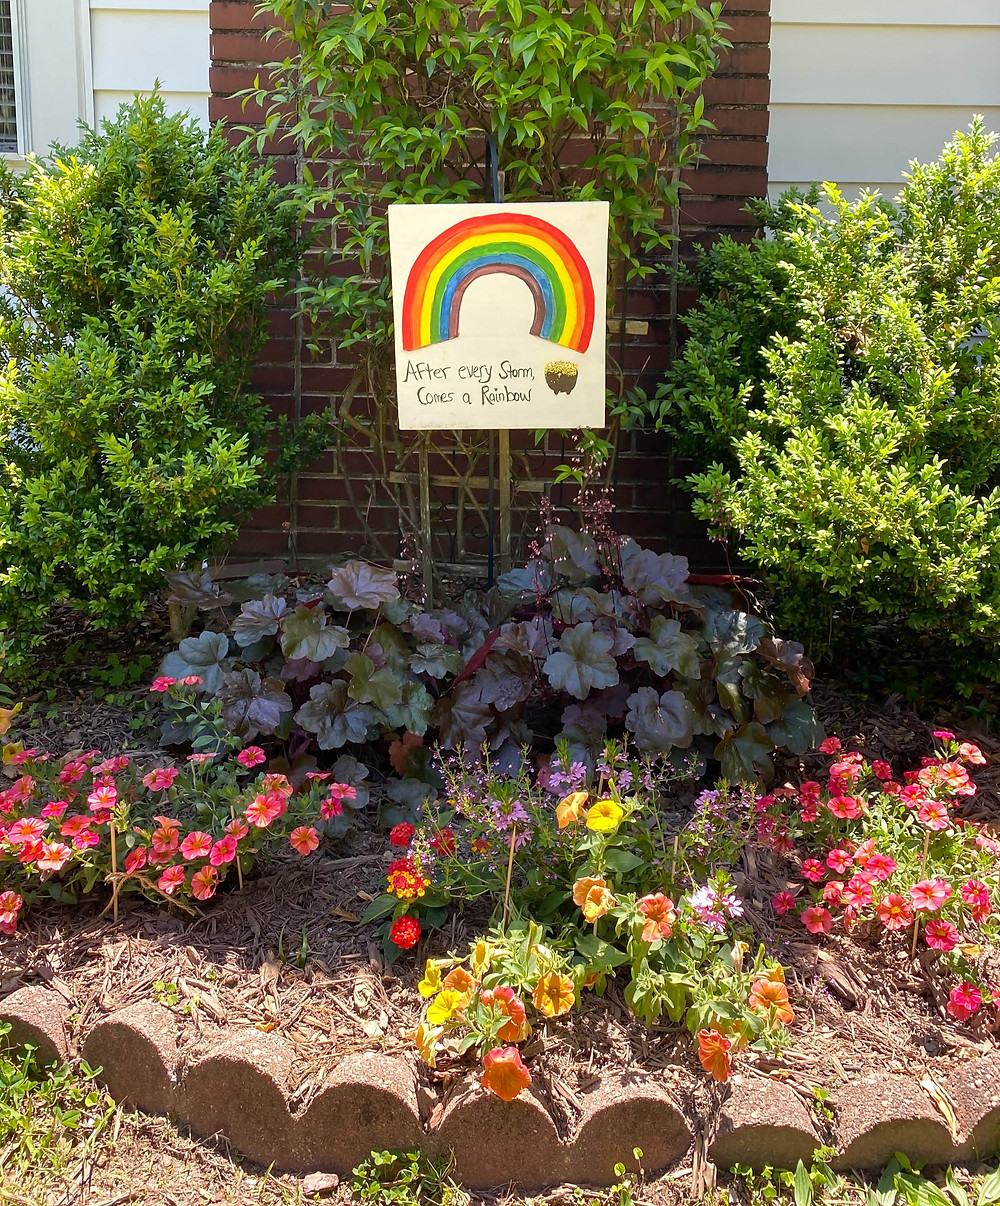 Handmade painted rainbow sign put outside by neighbors during the Coronavirus in Marietta Georgia on Stewart Avenue, kindness, support, encouragement